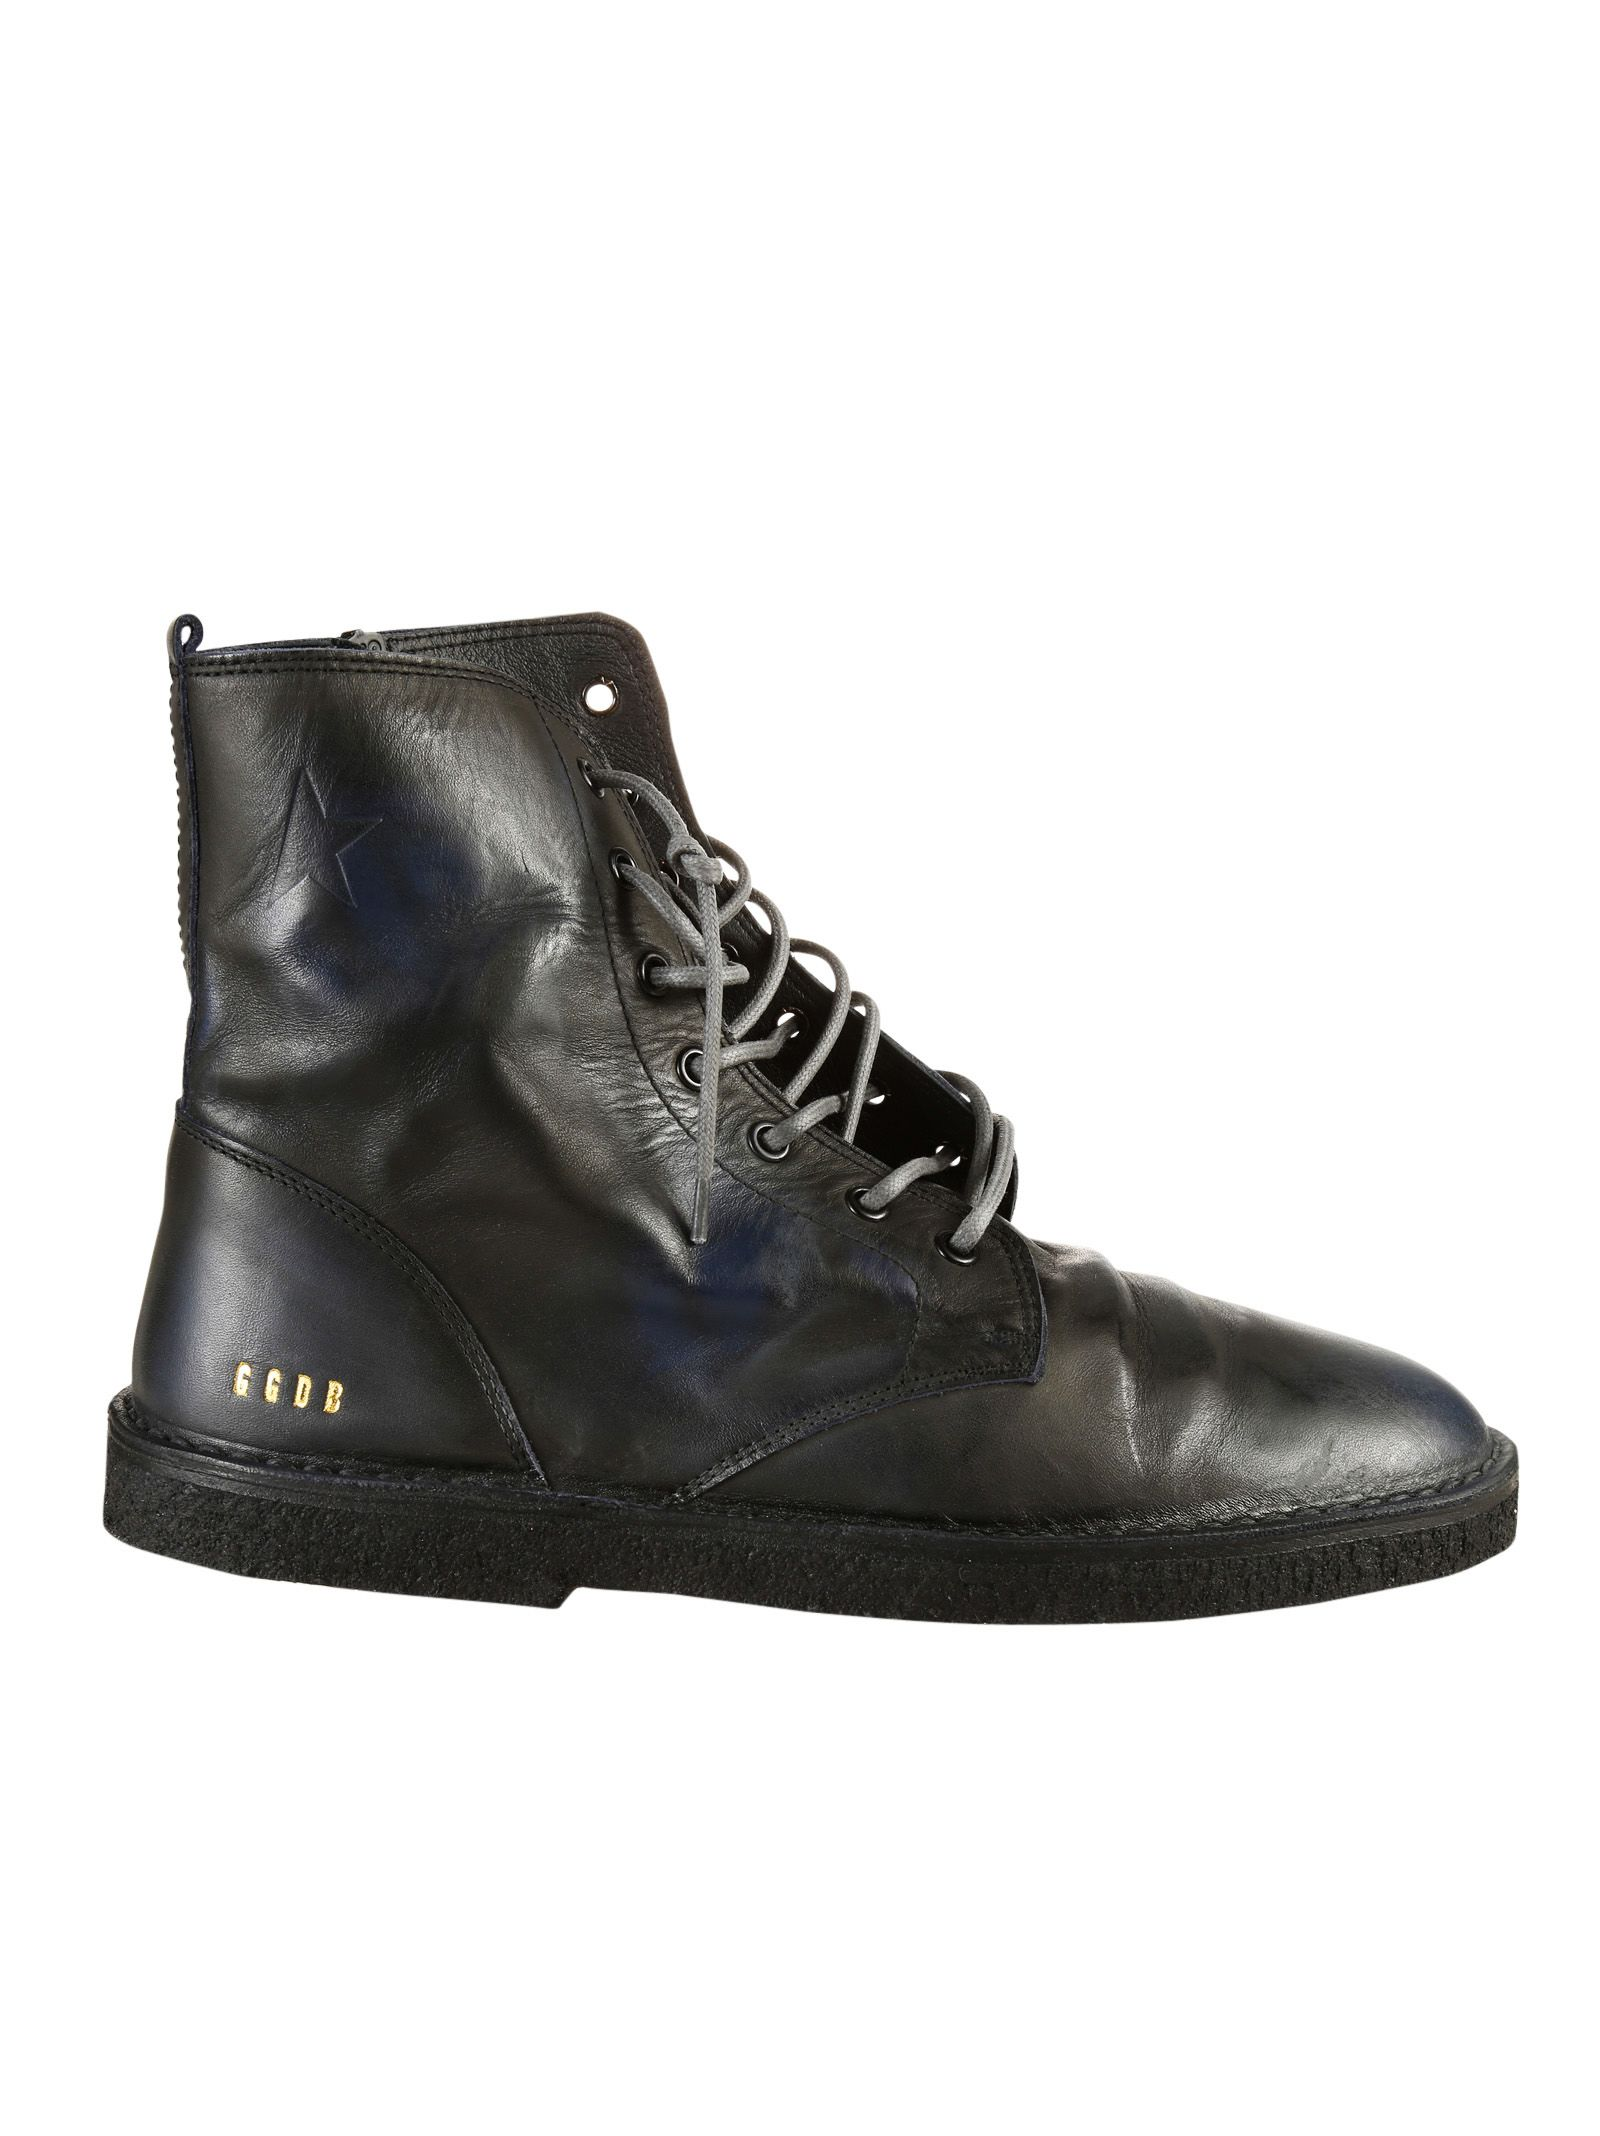 Golden Goose - Golden Goose Deluxe Brand Black Leather Lace-up ...